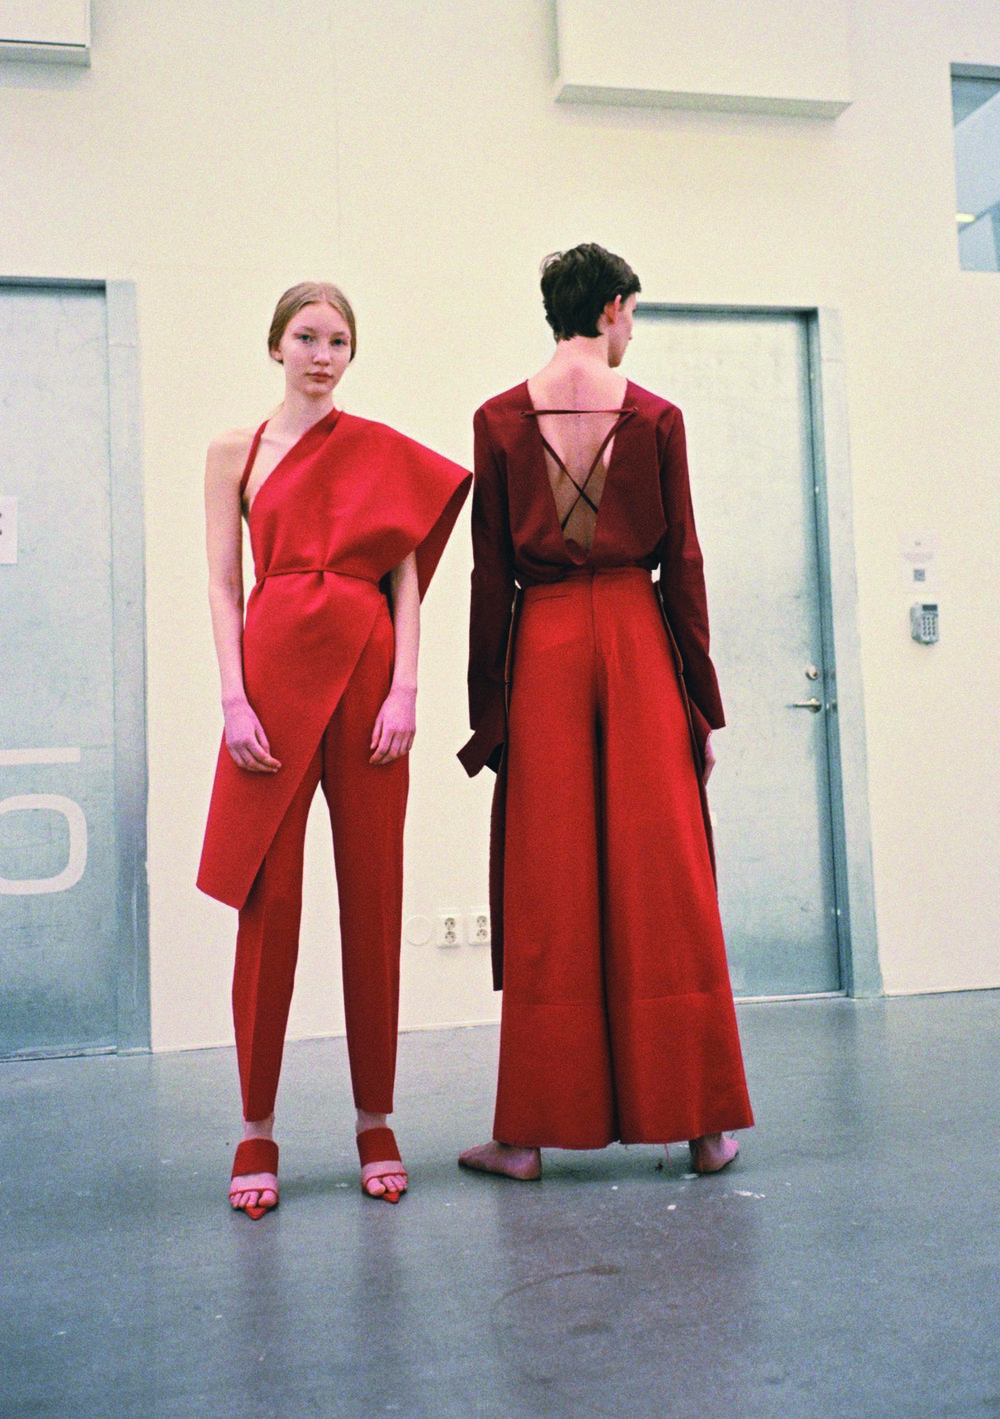 Shot for Coeval Magazine in Stockholm, Sweden by Kimberly Ihre, directed and styled by Ellen Grace, featured designer Mina Lundgren of Notions of Form, models from Mikas Stockholm >>  https://www.coeval-magazine.com/under-surveillance